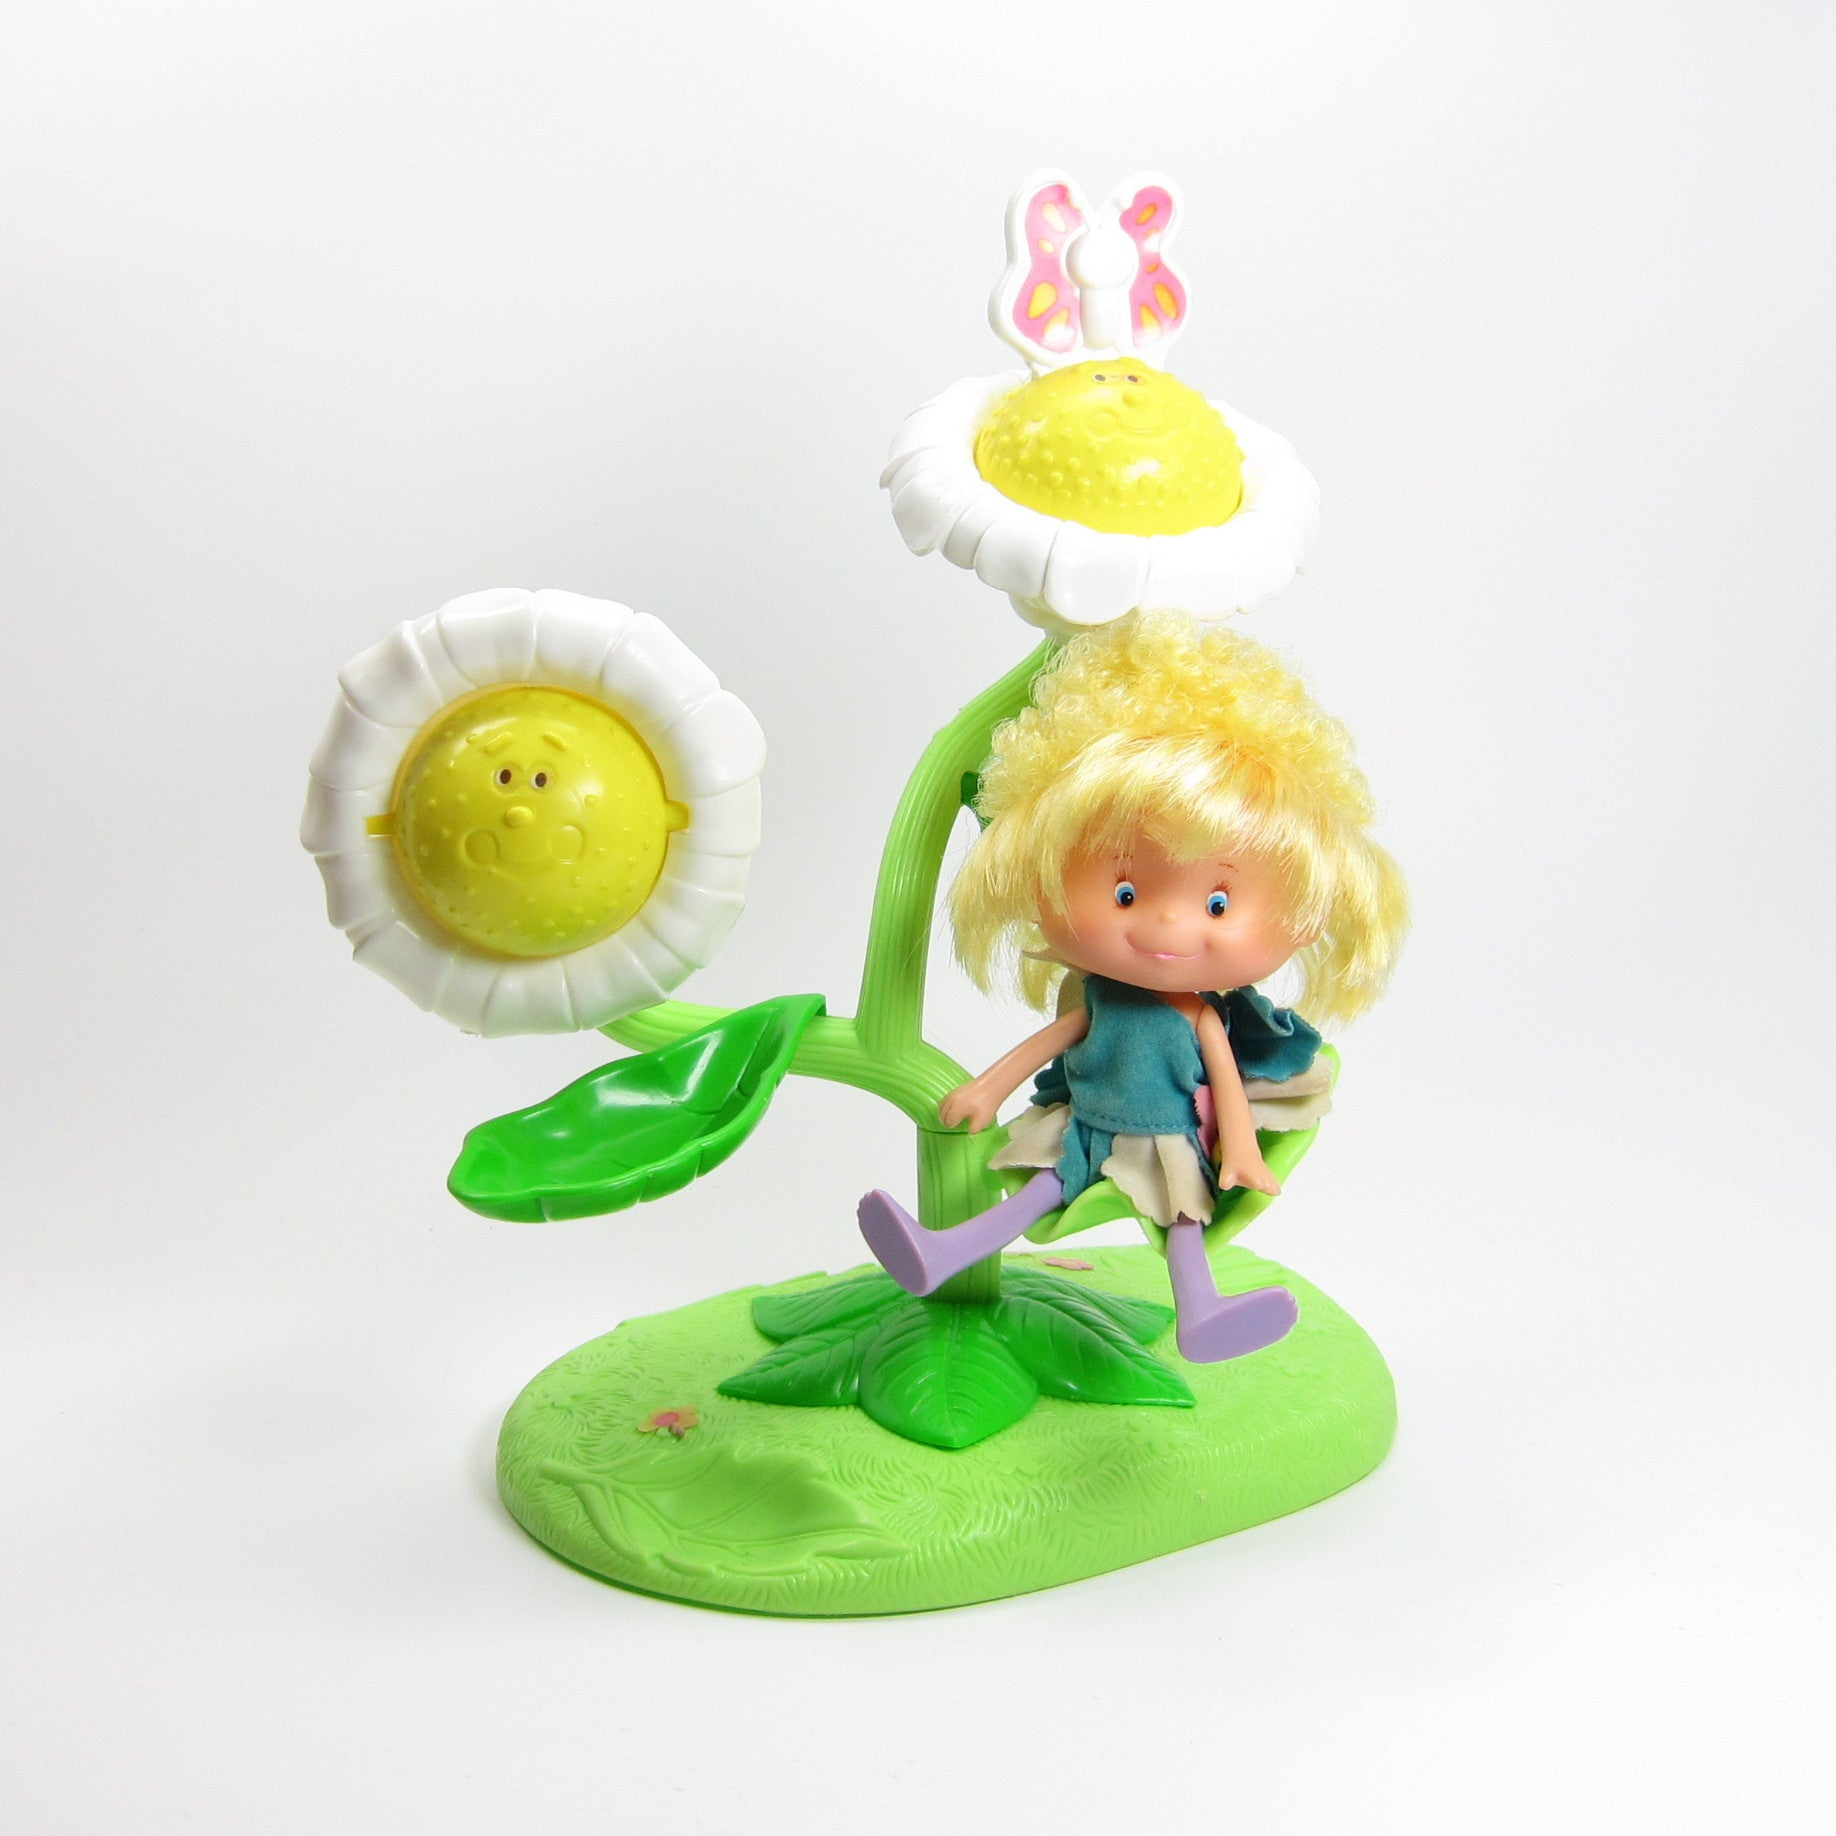 Herself the Elf Flower Vanity play set